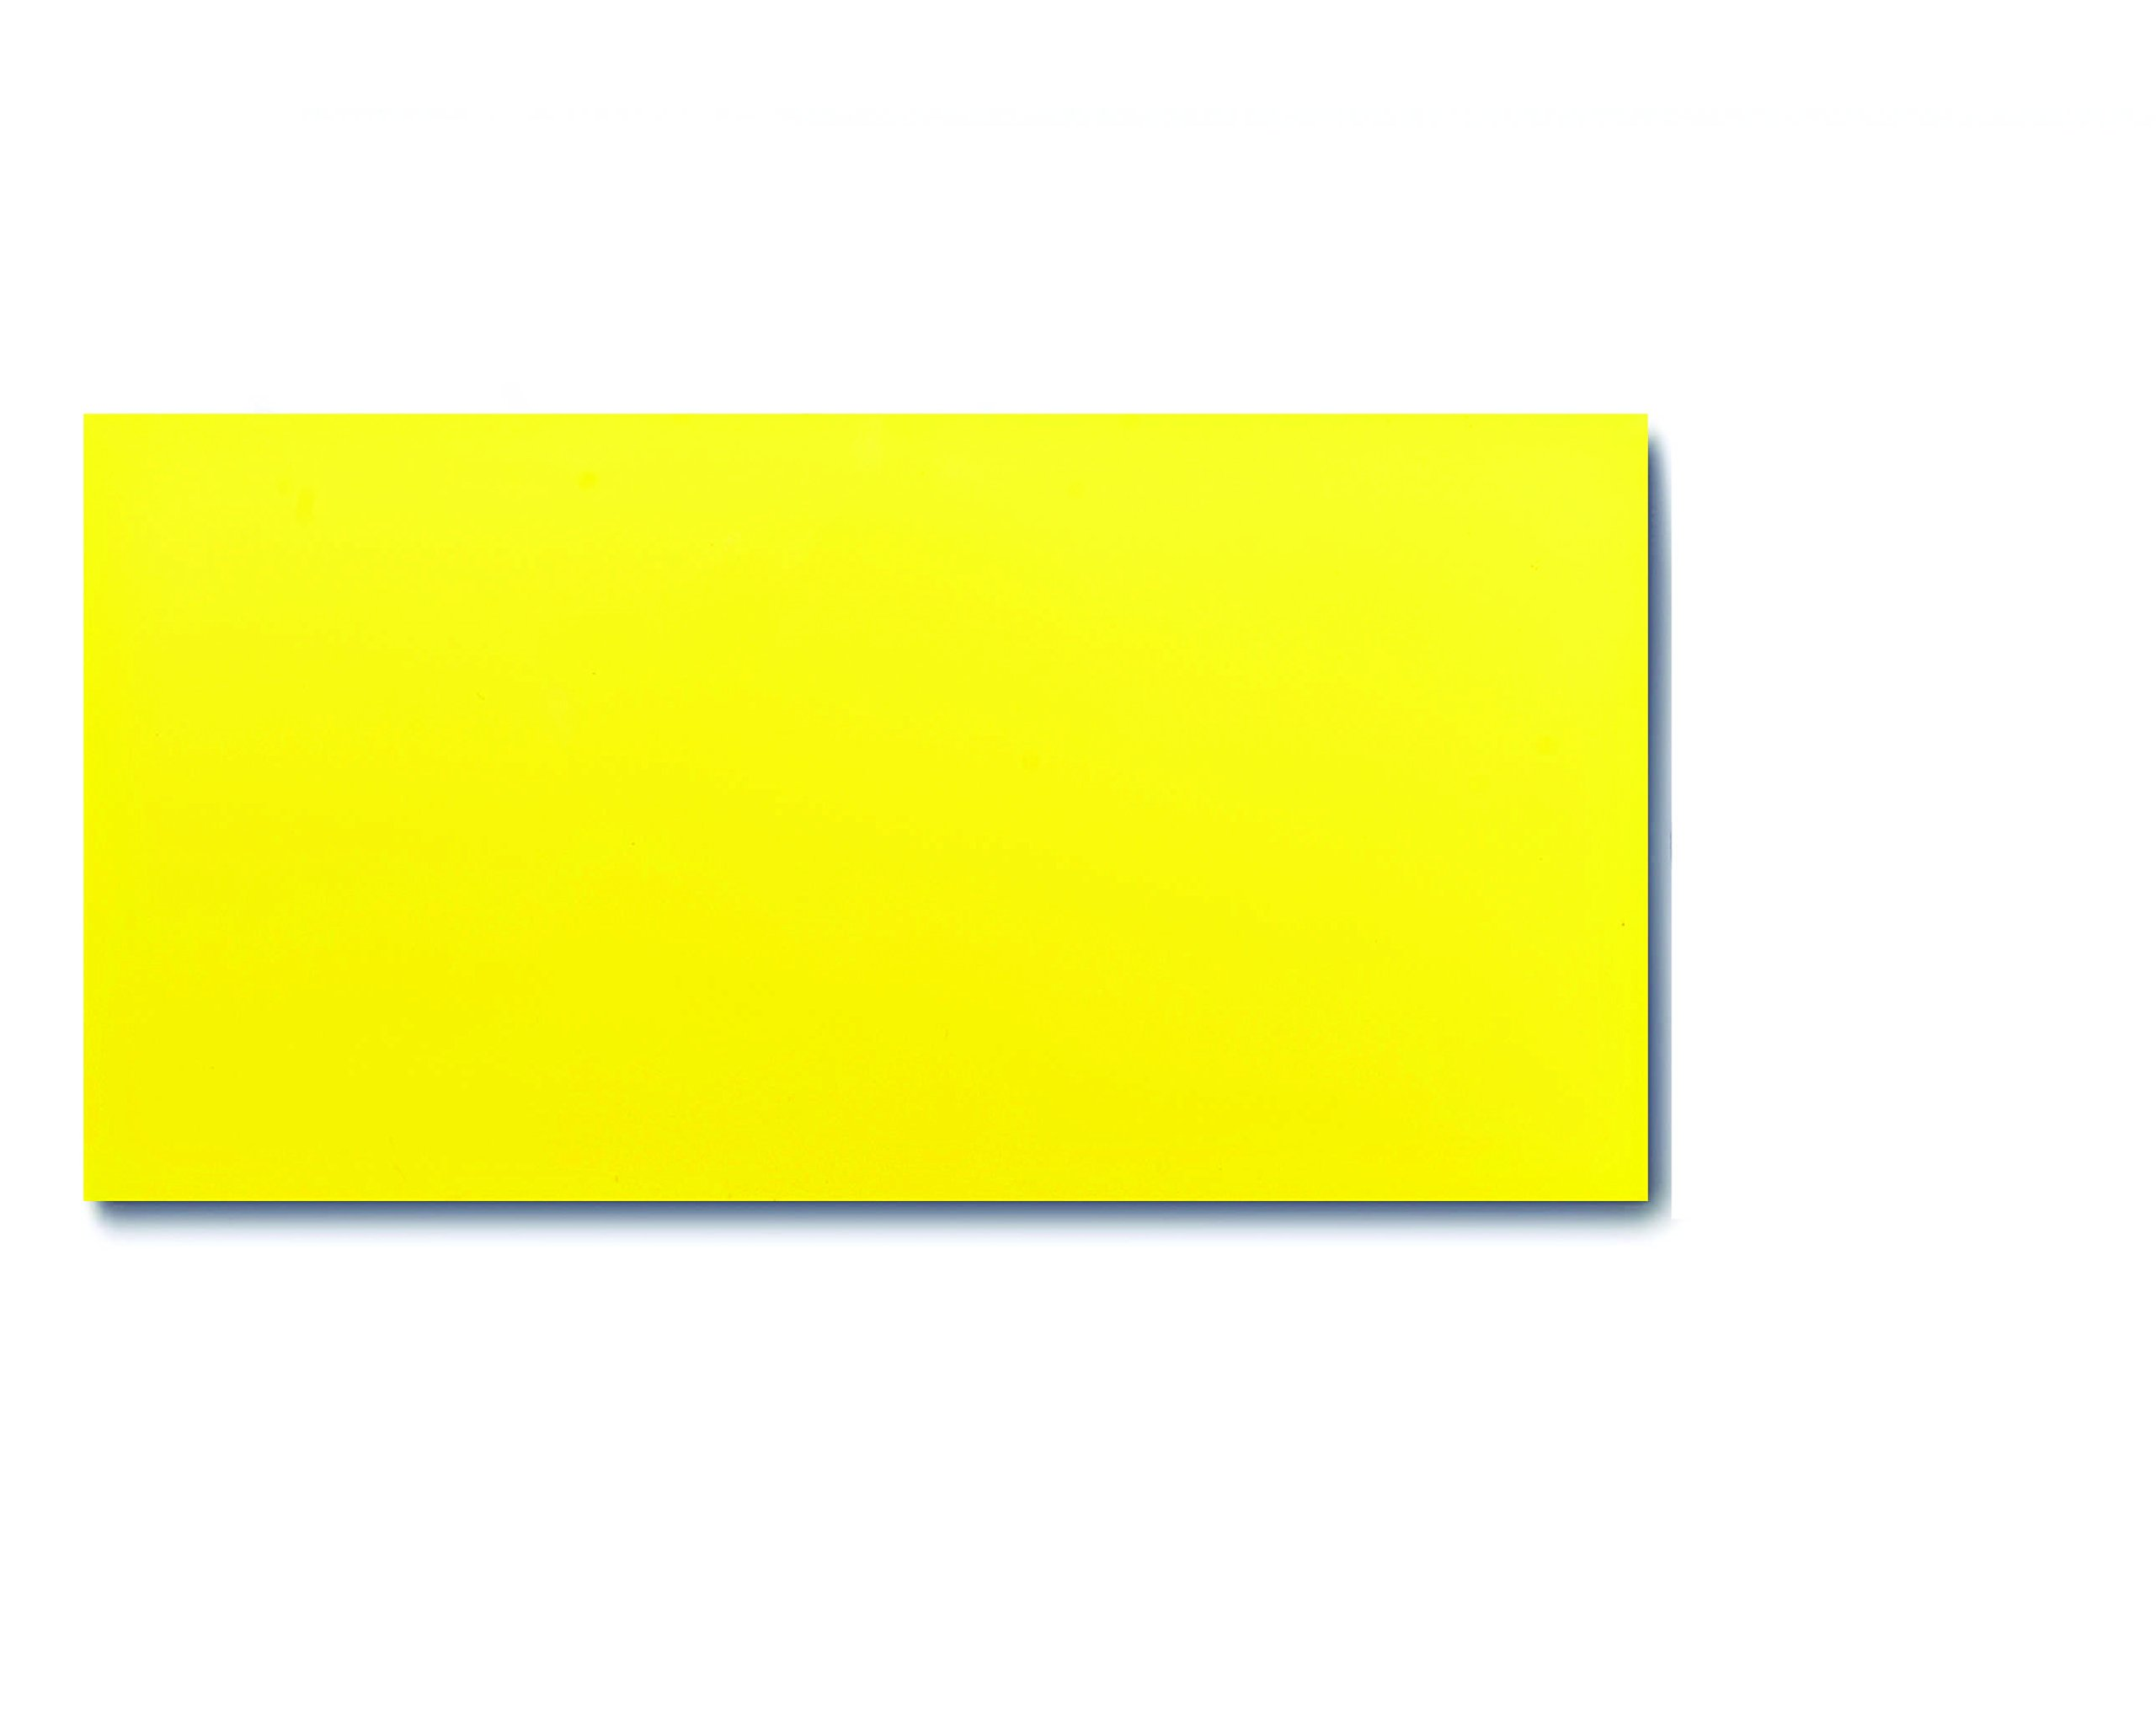 25 Dry Erase Magnetic Shelf Labels 2'' x 4'' - Yellow - 20 mil - Write On/Wipe Off